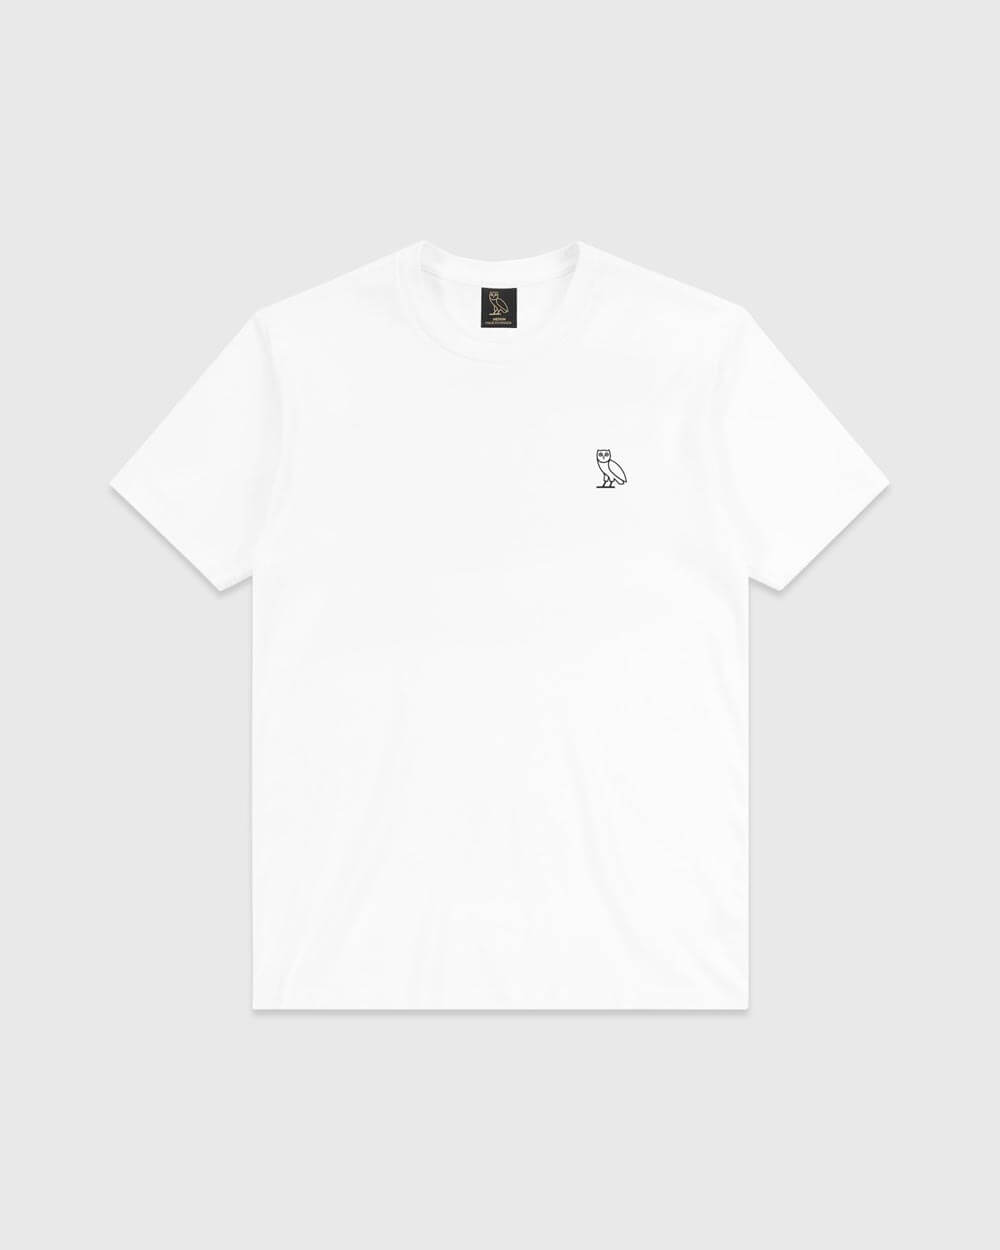 OWL T-SHIRT - WHITE